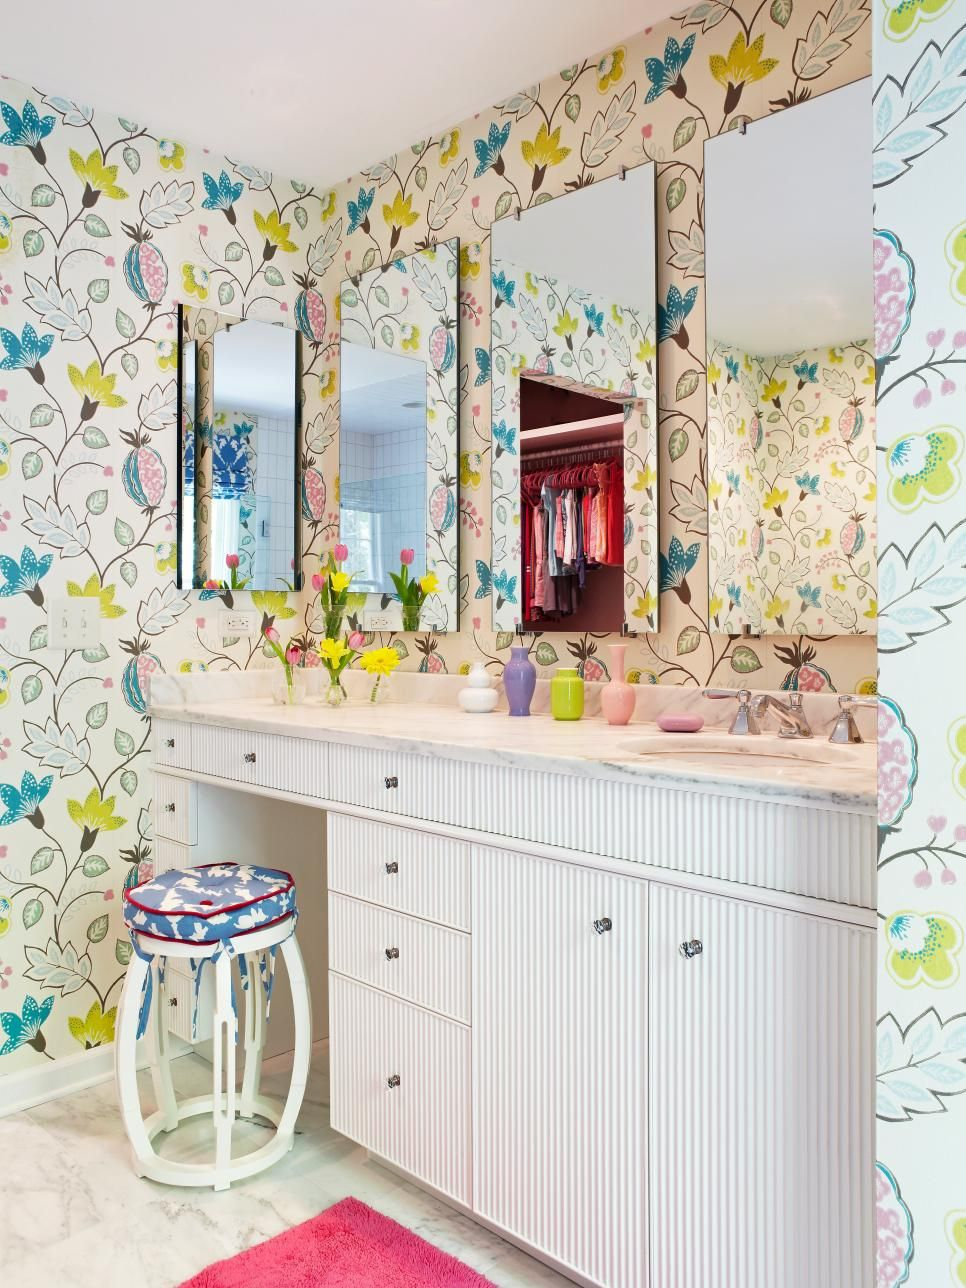 Girly bathroom with fun and colorful wallpaper.